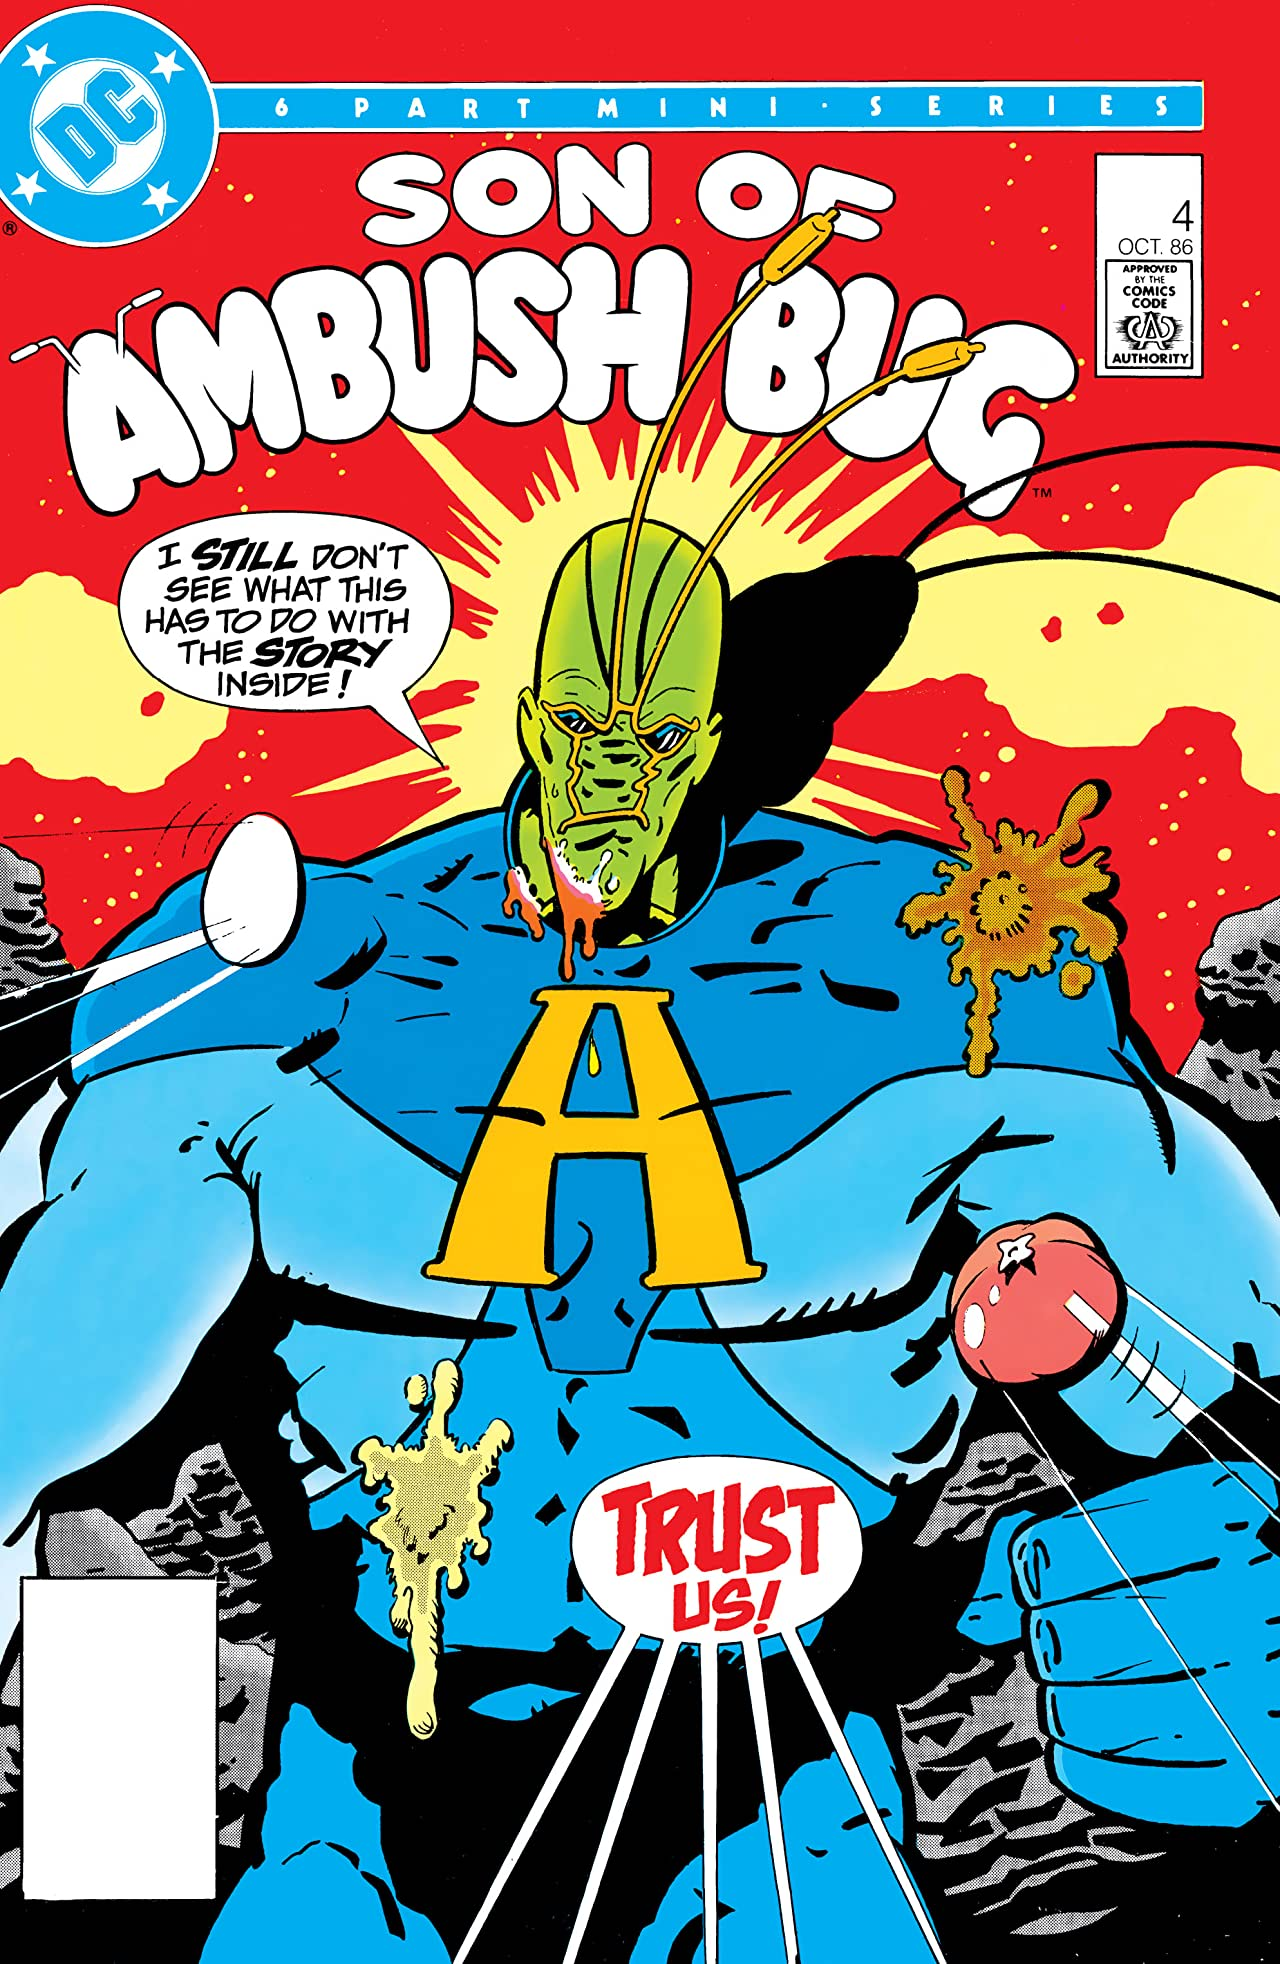 Son of Ambush Bug (1986) #4